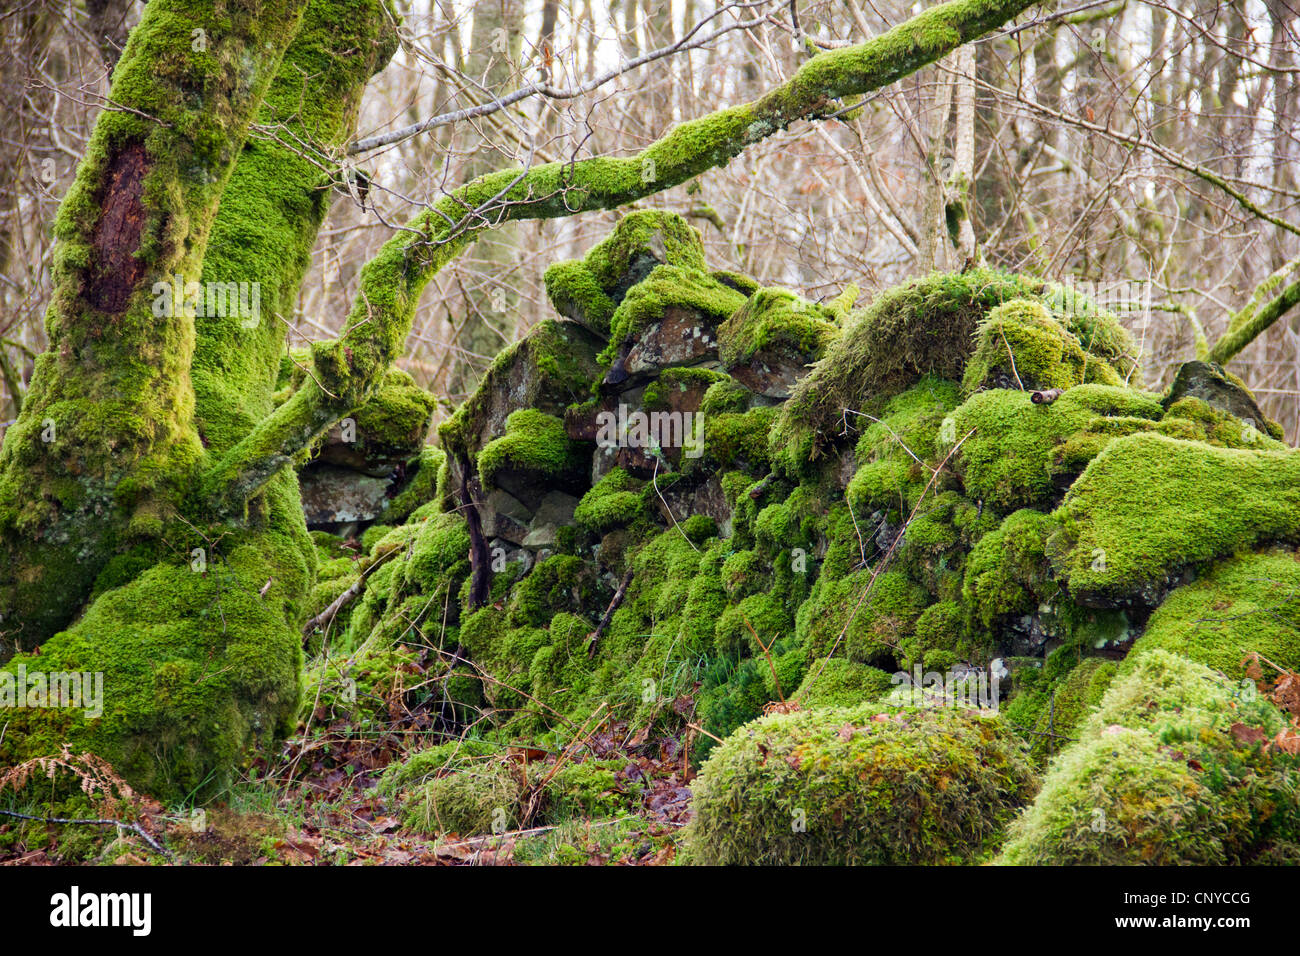 Dry Stone Dyke Wall covered in moss at Wood of Cree in Galloway, Scotland Stock Photo